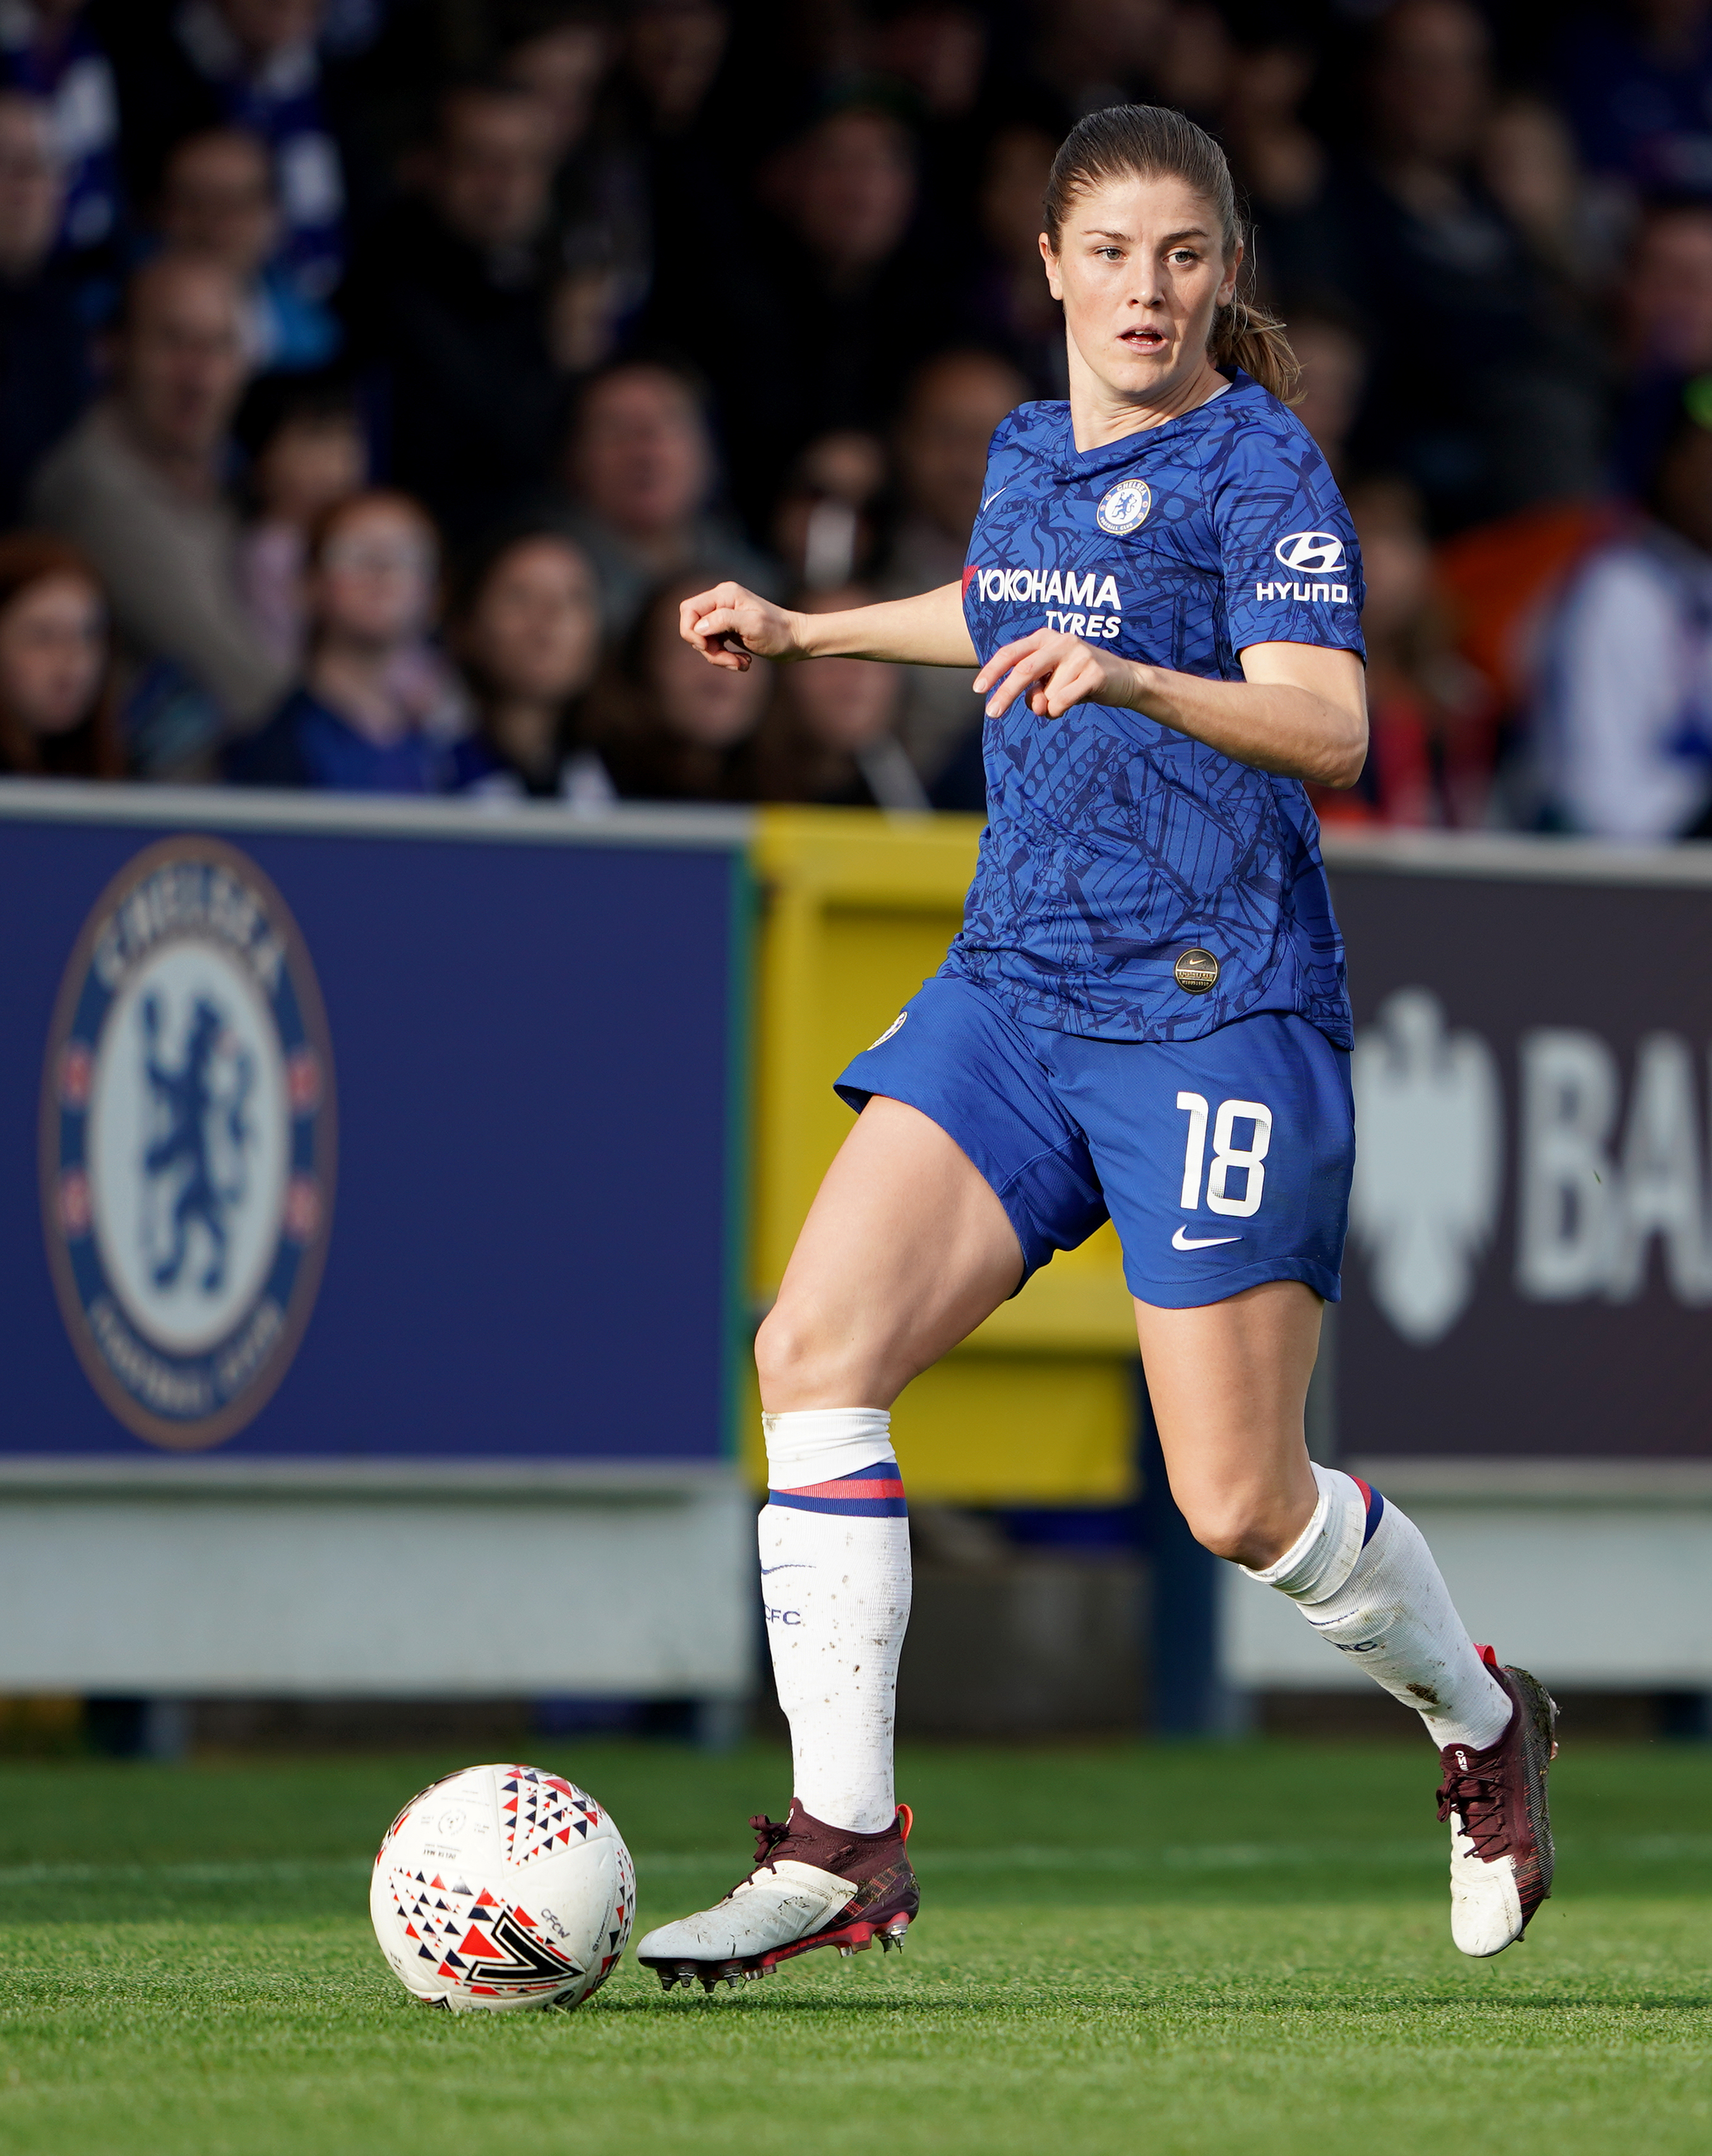 Chelsea Women v Arsenal Women - FA Women's Super League - Kingsmeadow